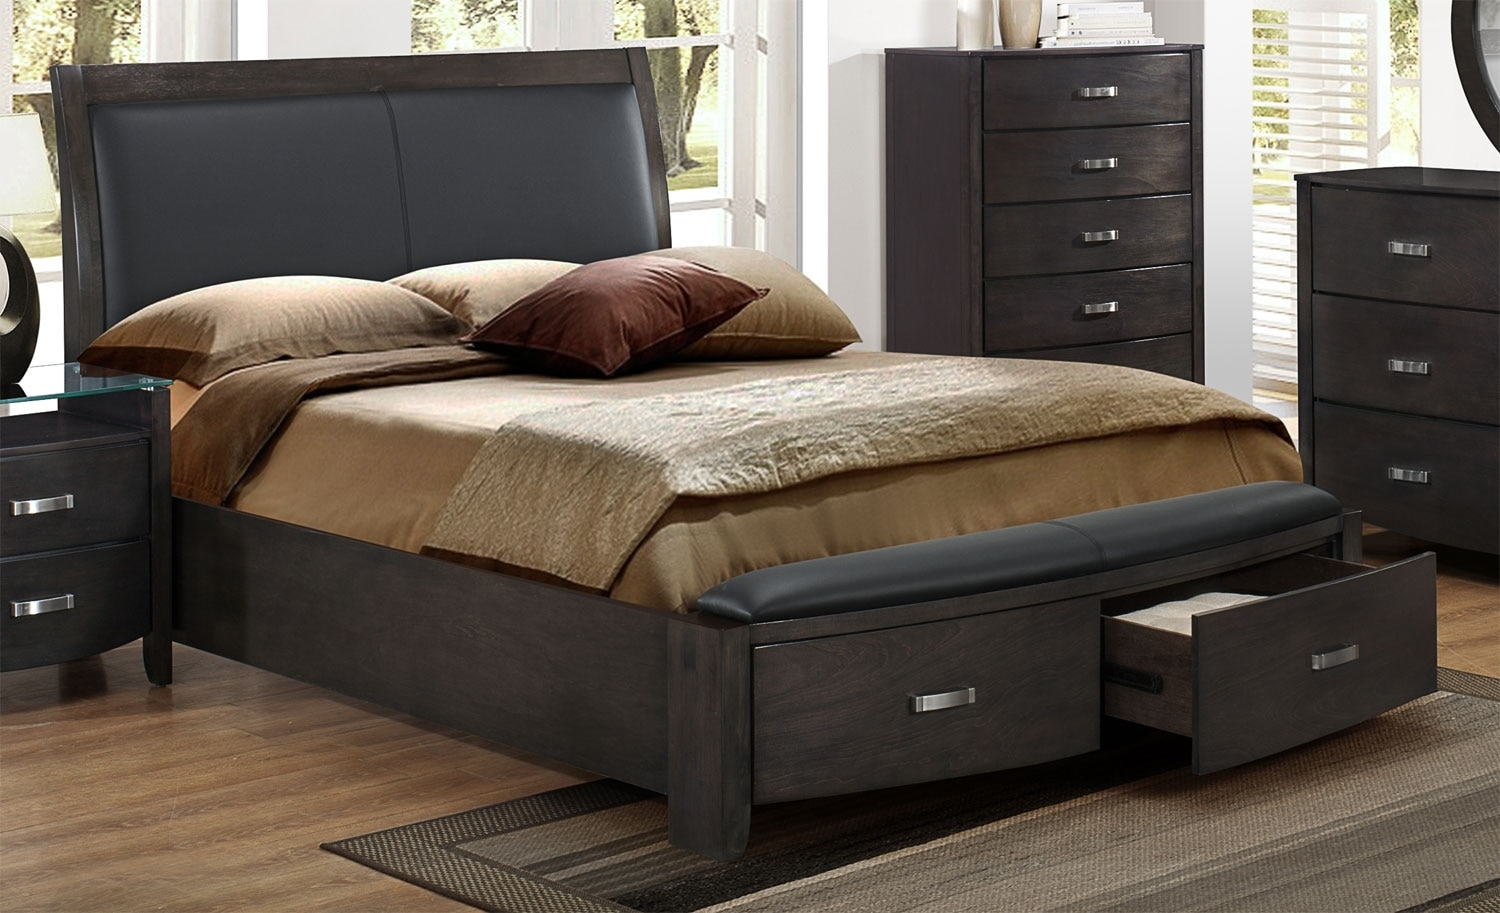 King Bed With Storage Canada Cinema King Bed Charcoal Leon 39s